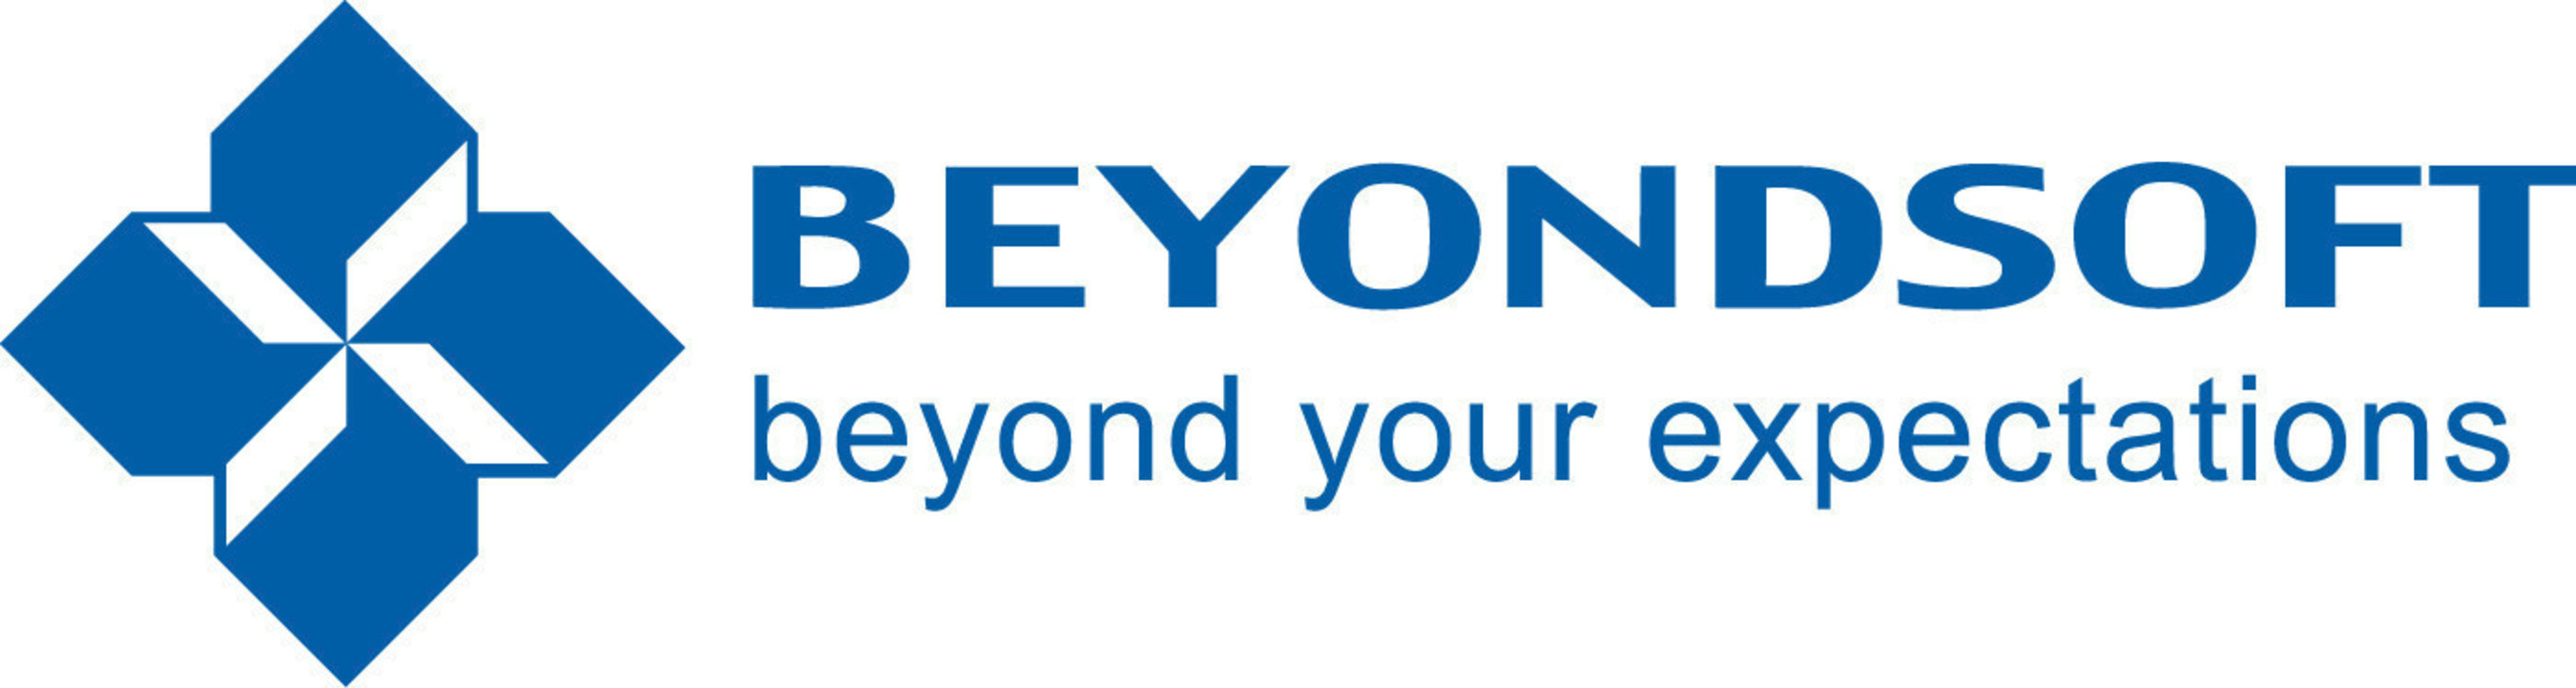 Beyondsoft Joins Microsoft's Preferred Partner Power BI Red Carpet Program